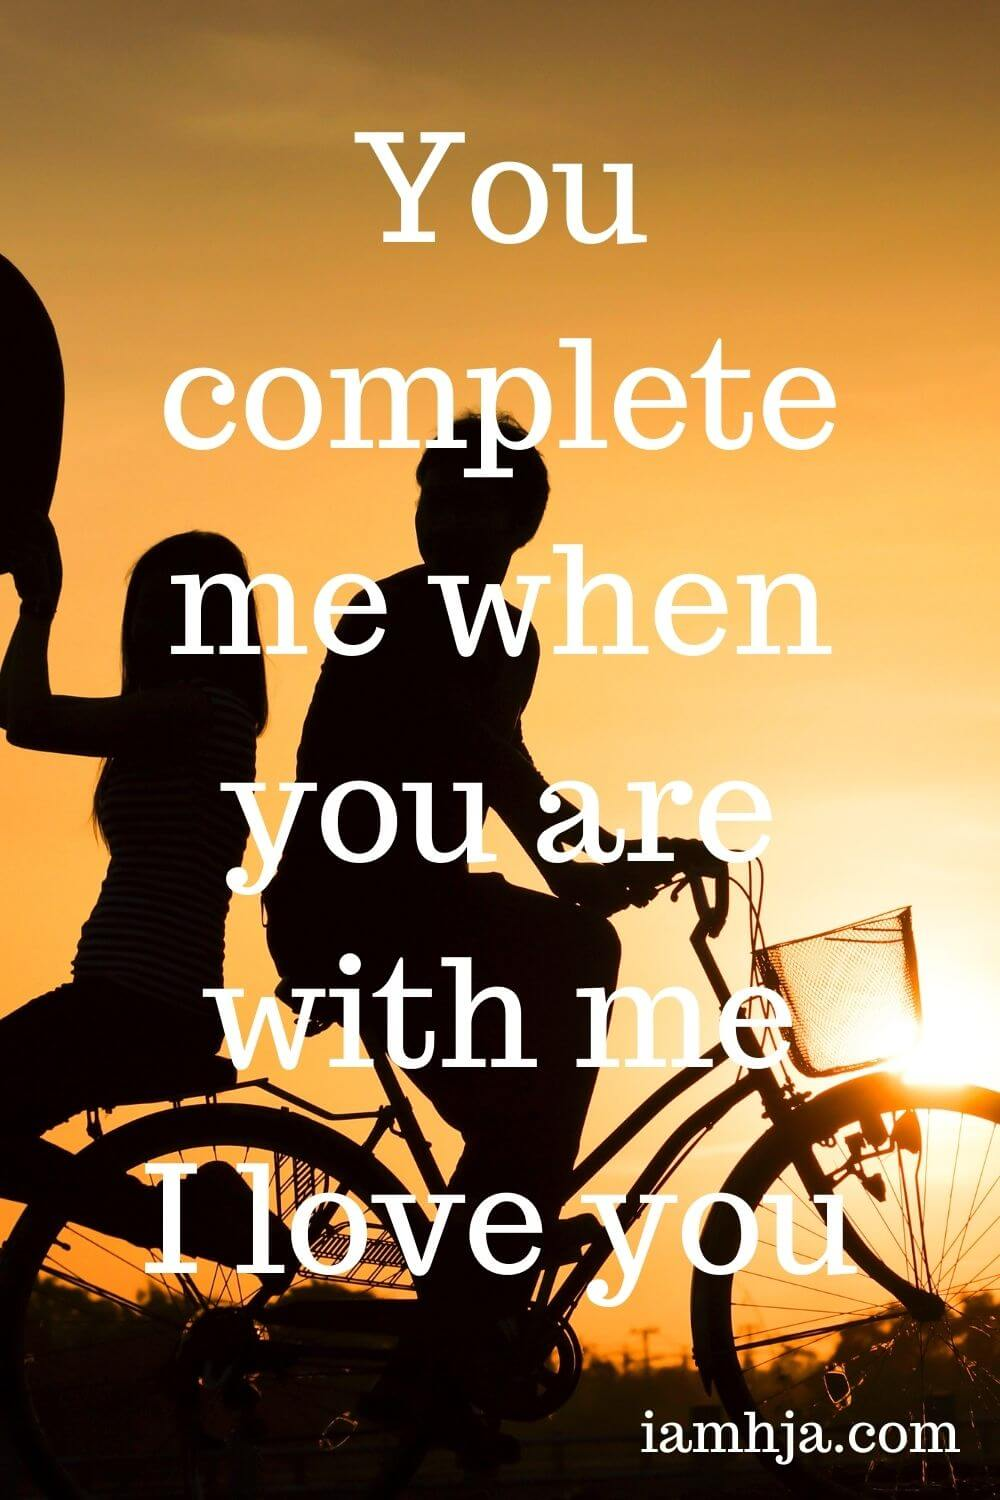 You complete me when you are with me. I love you